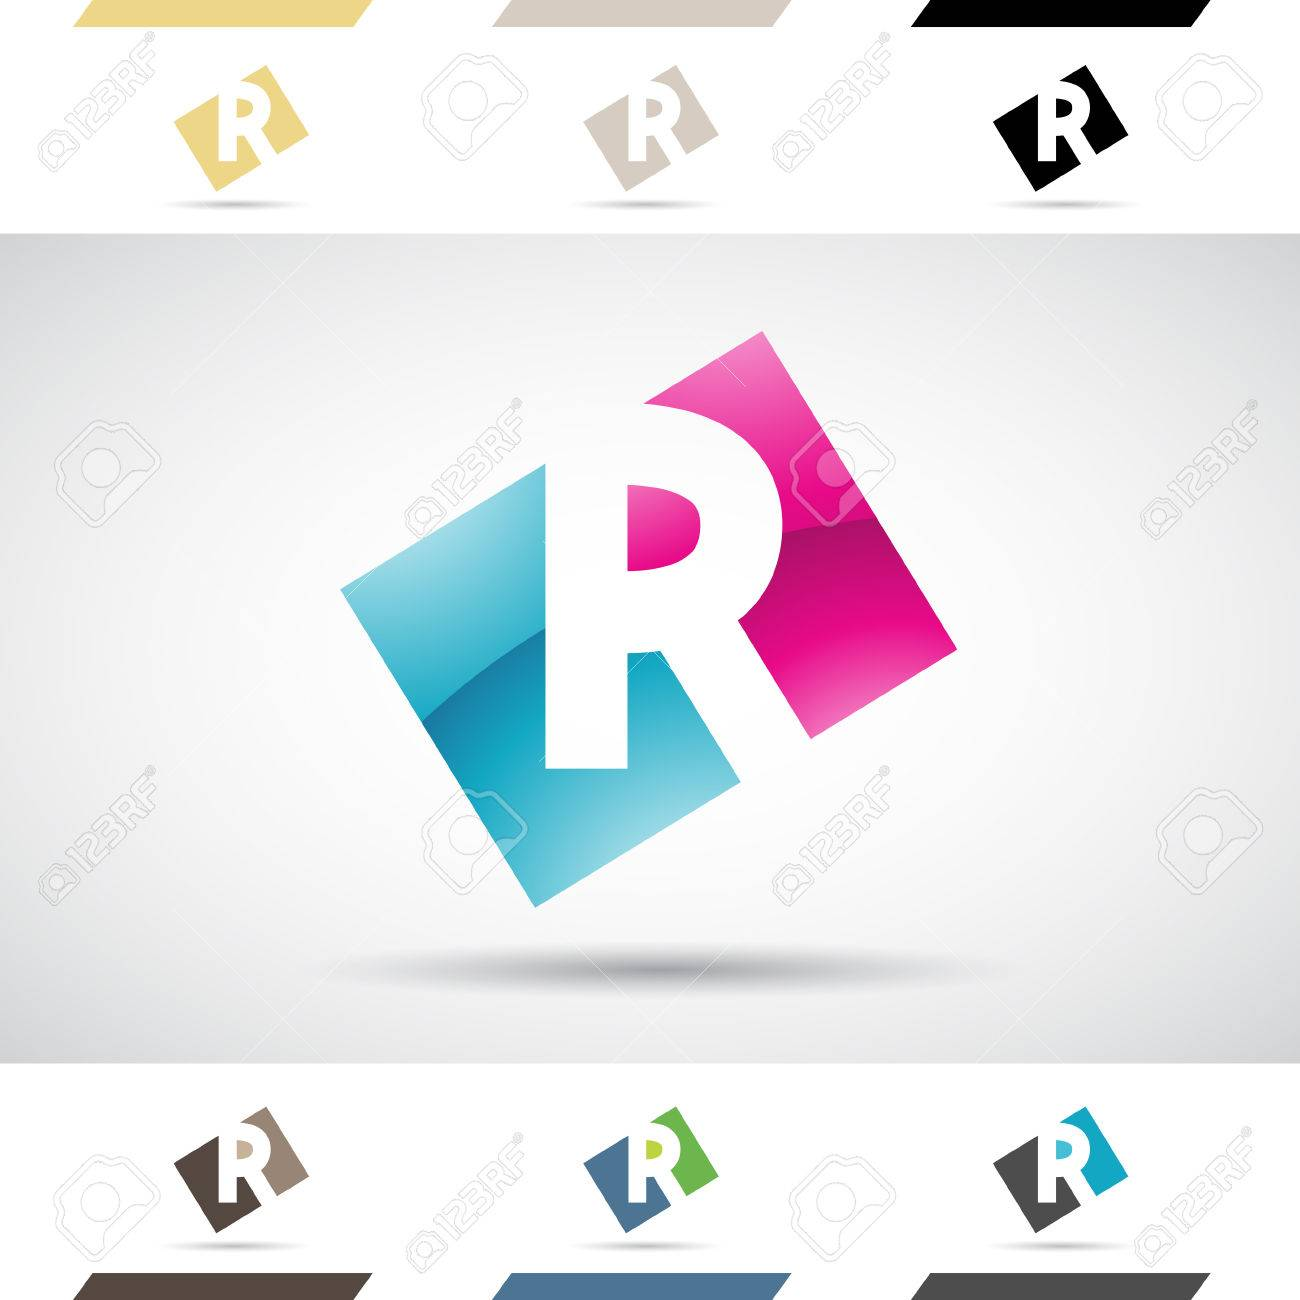 Design Concept Of Colorful Stock Icons And Shapes Of Letter R ...